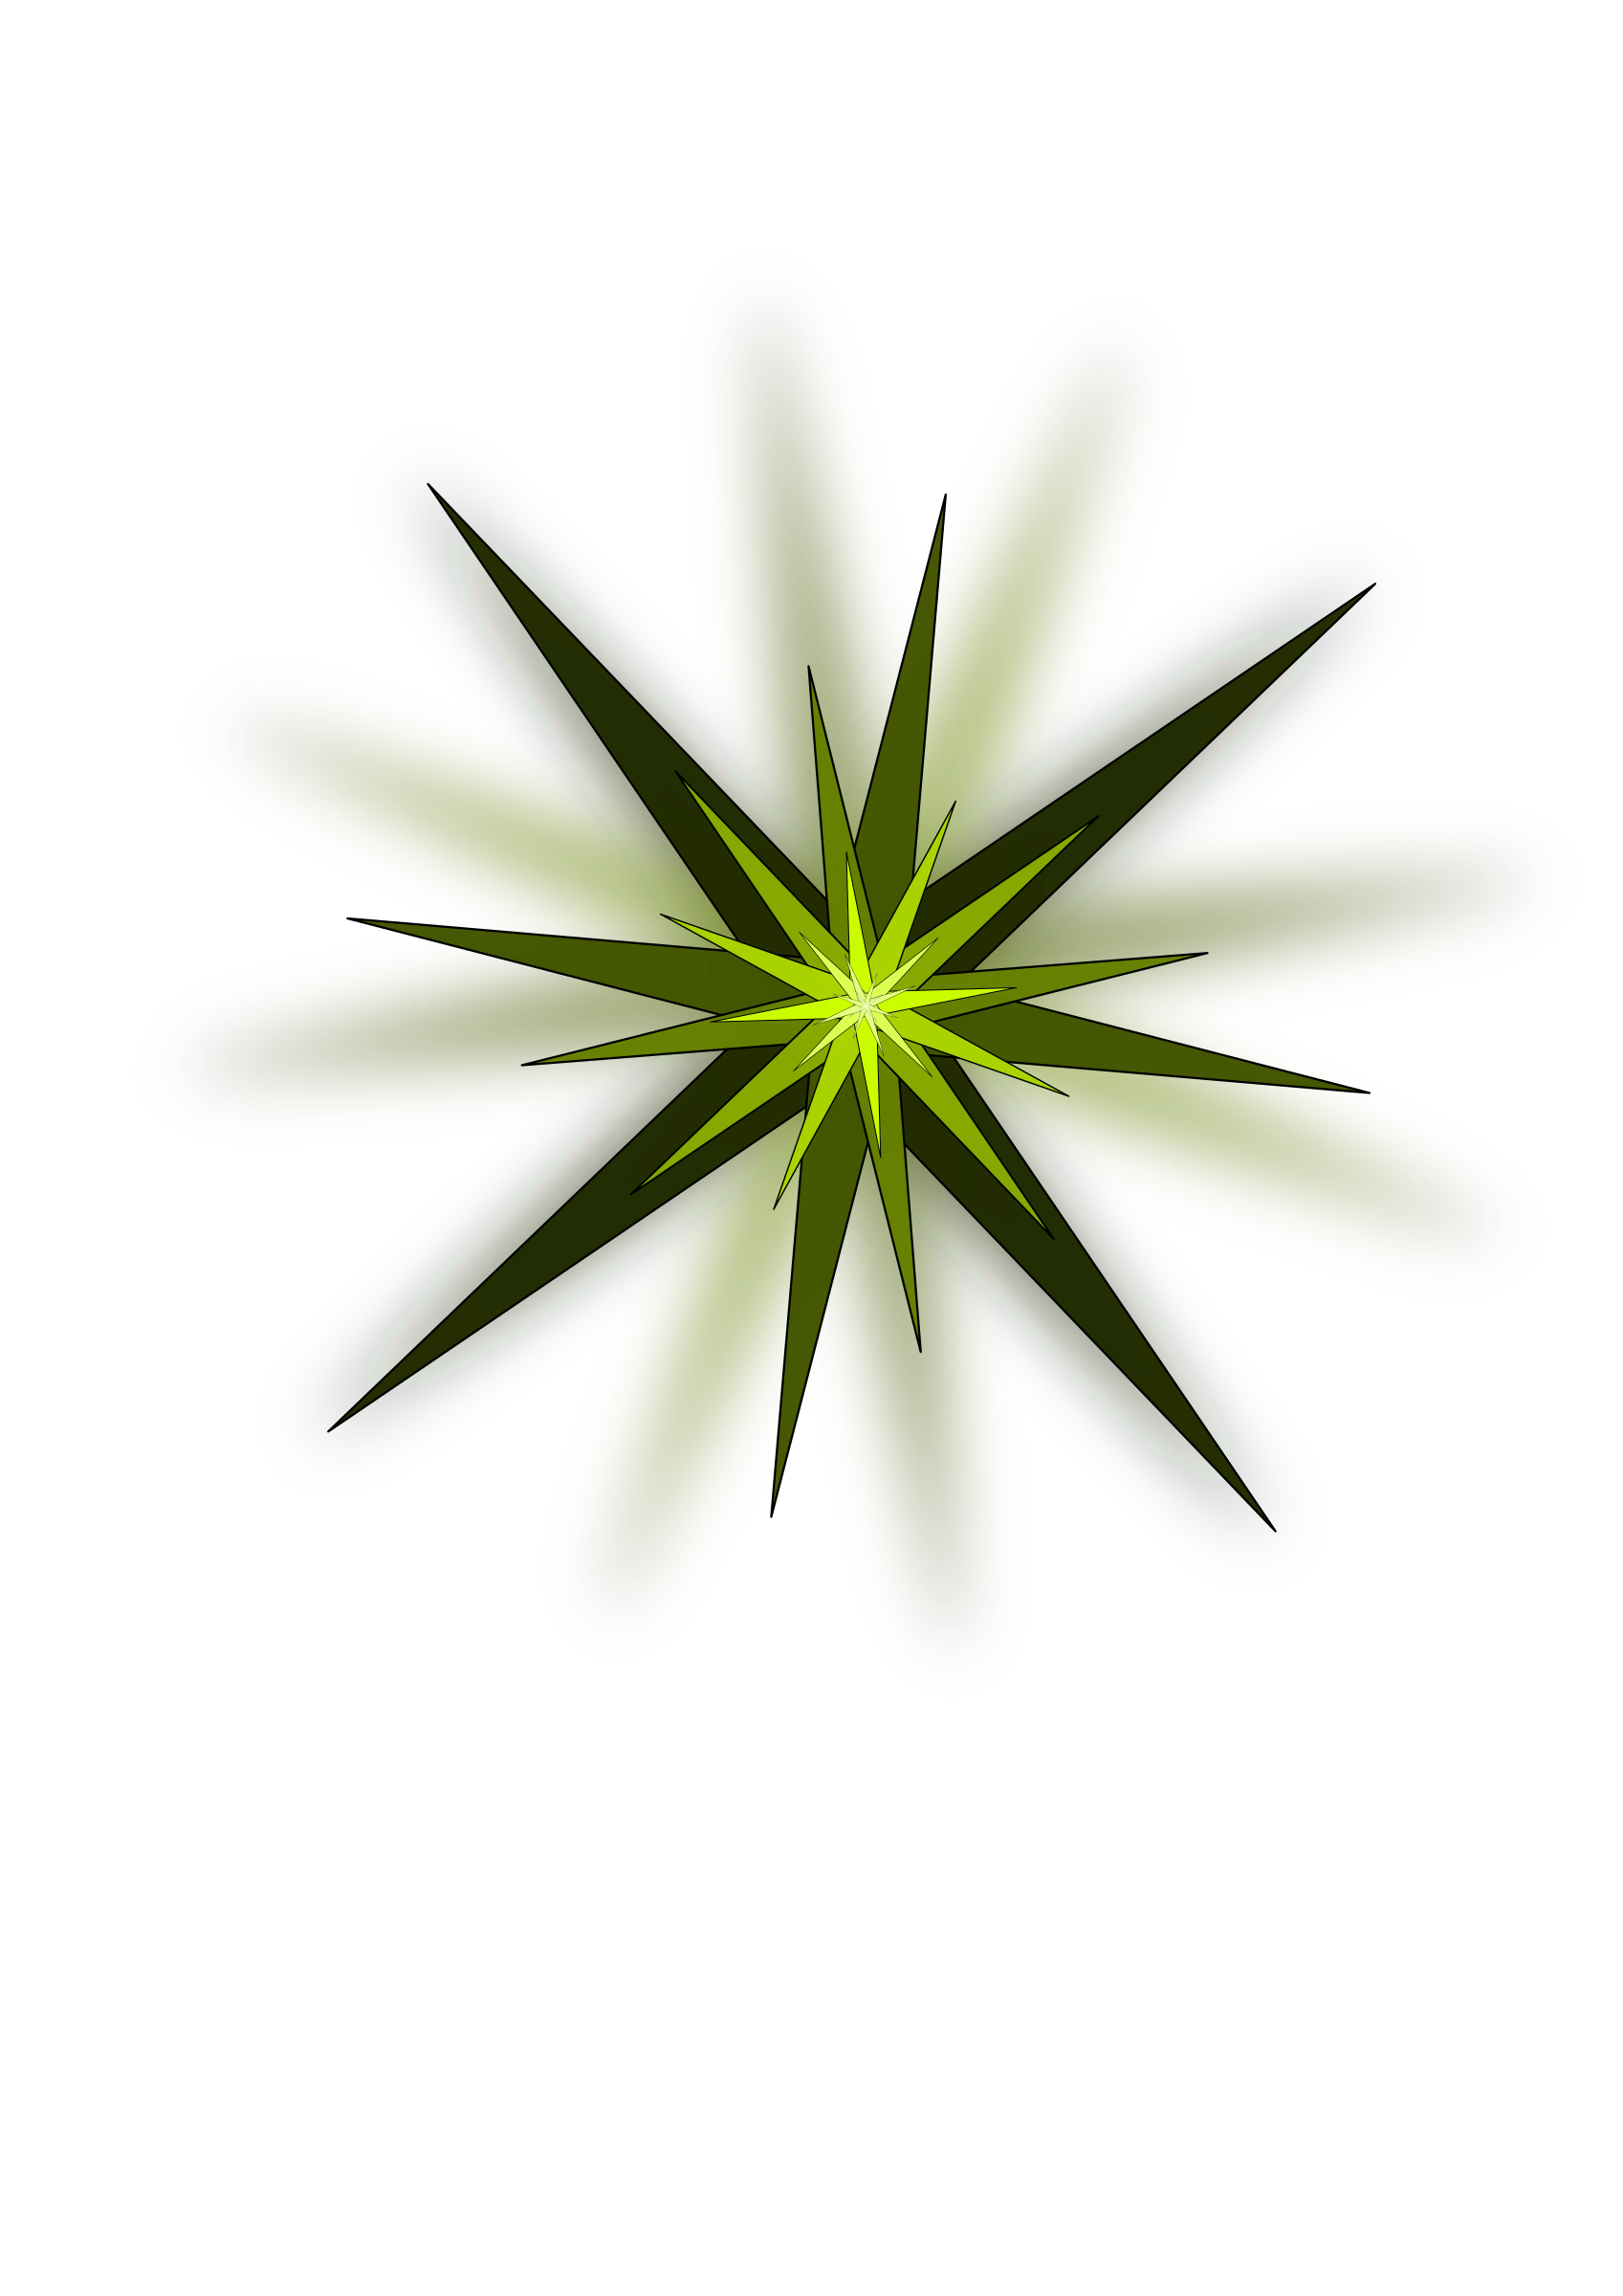 Green big image png. Clipart grass star